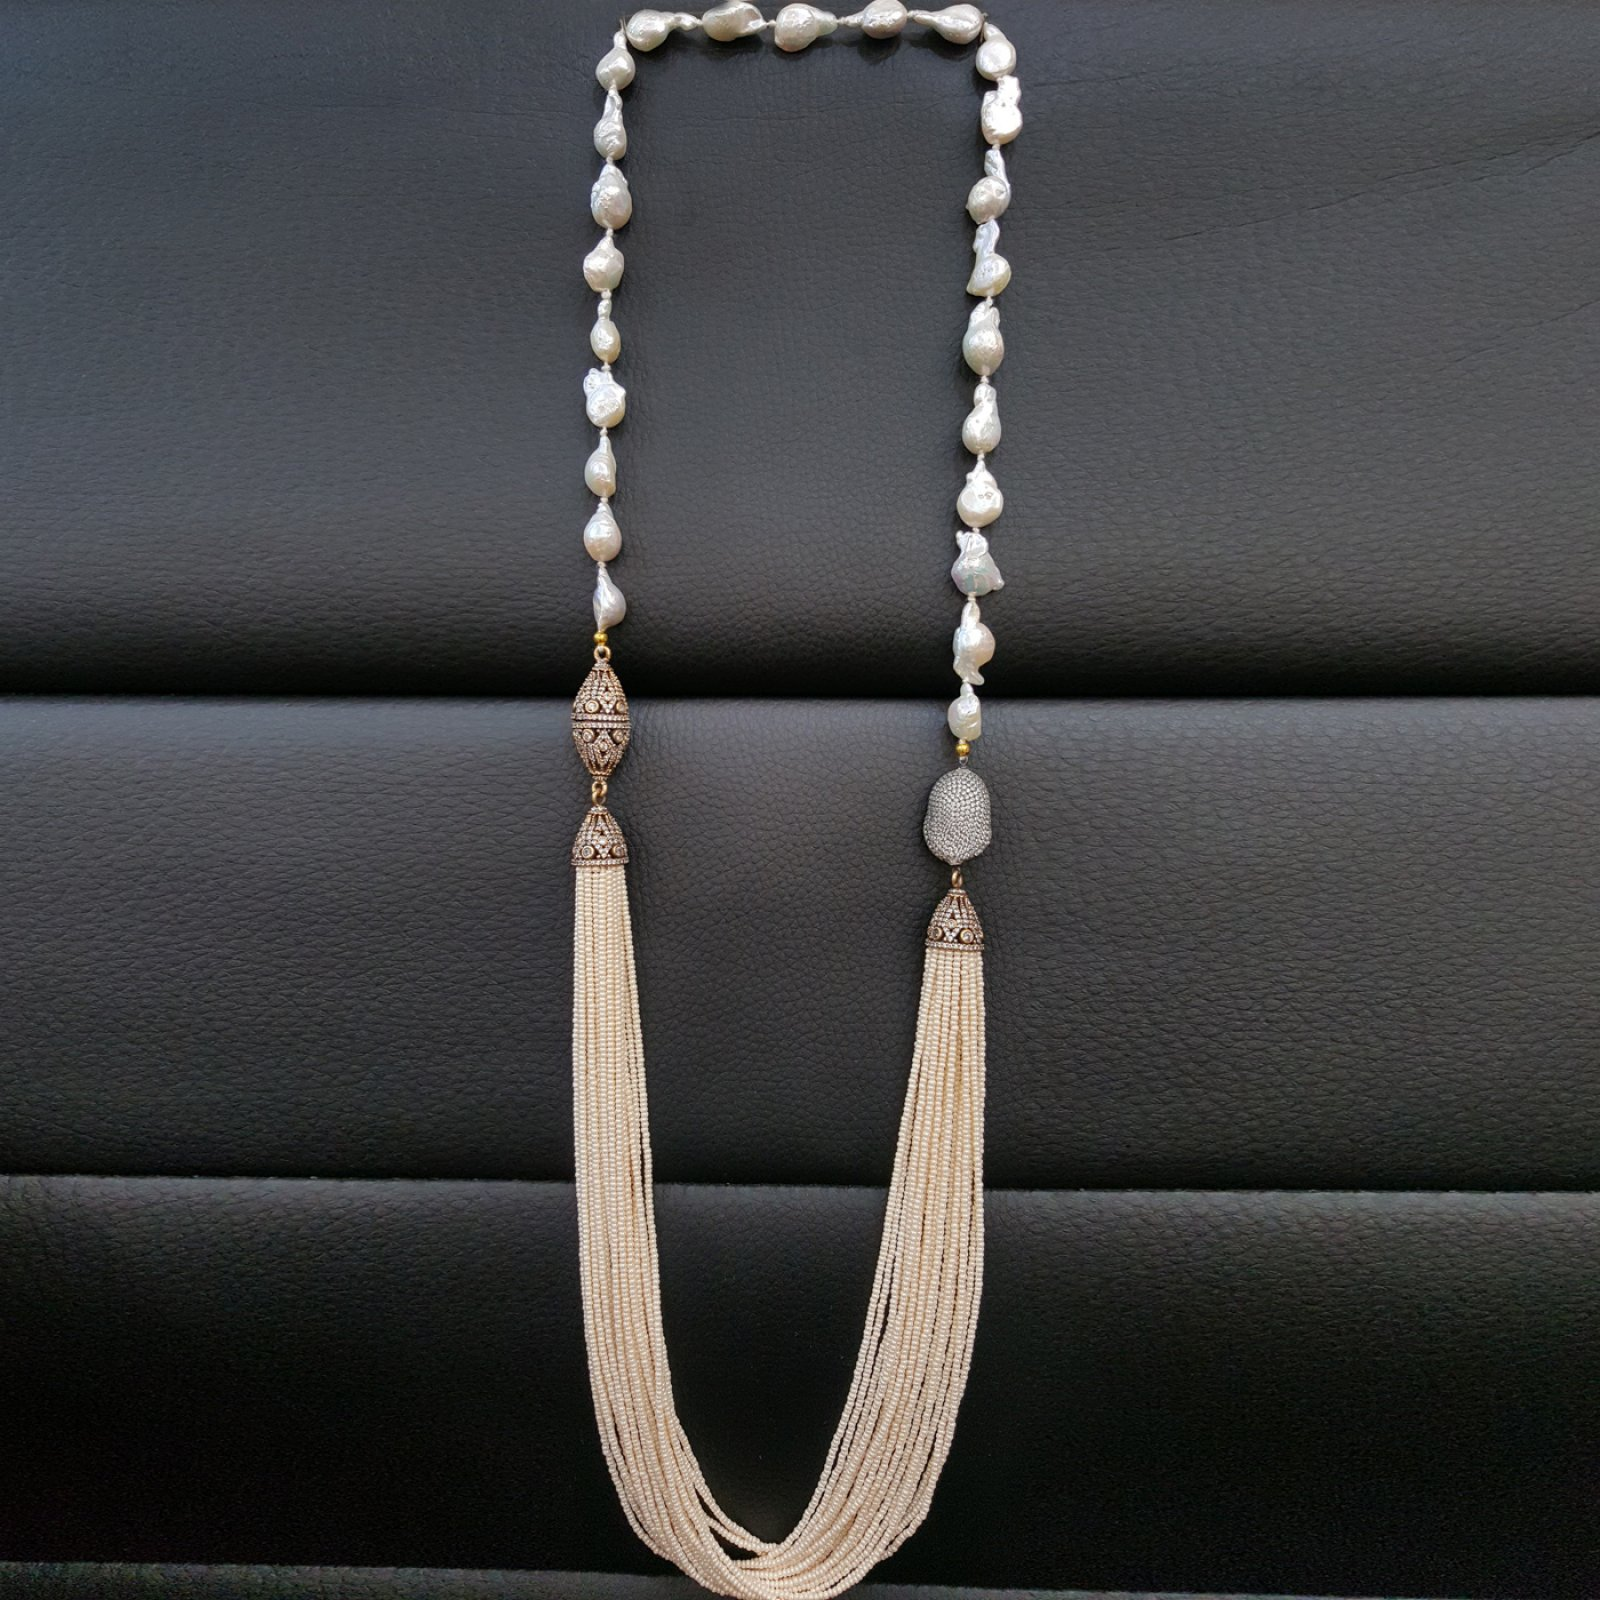 DRN21 - BAROQUE PEARL NECKLACE WITH ASSORTED DESIGNER FINDINGS